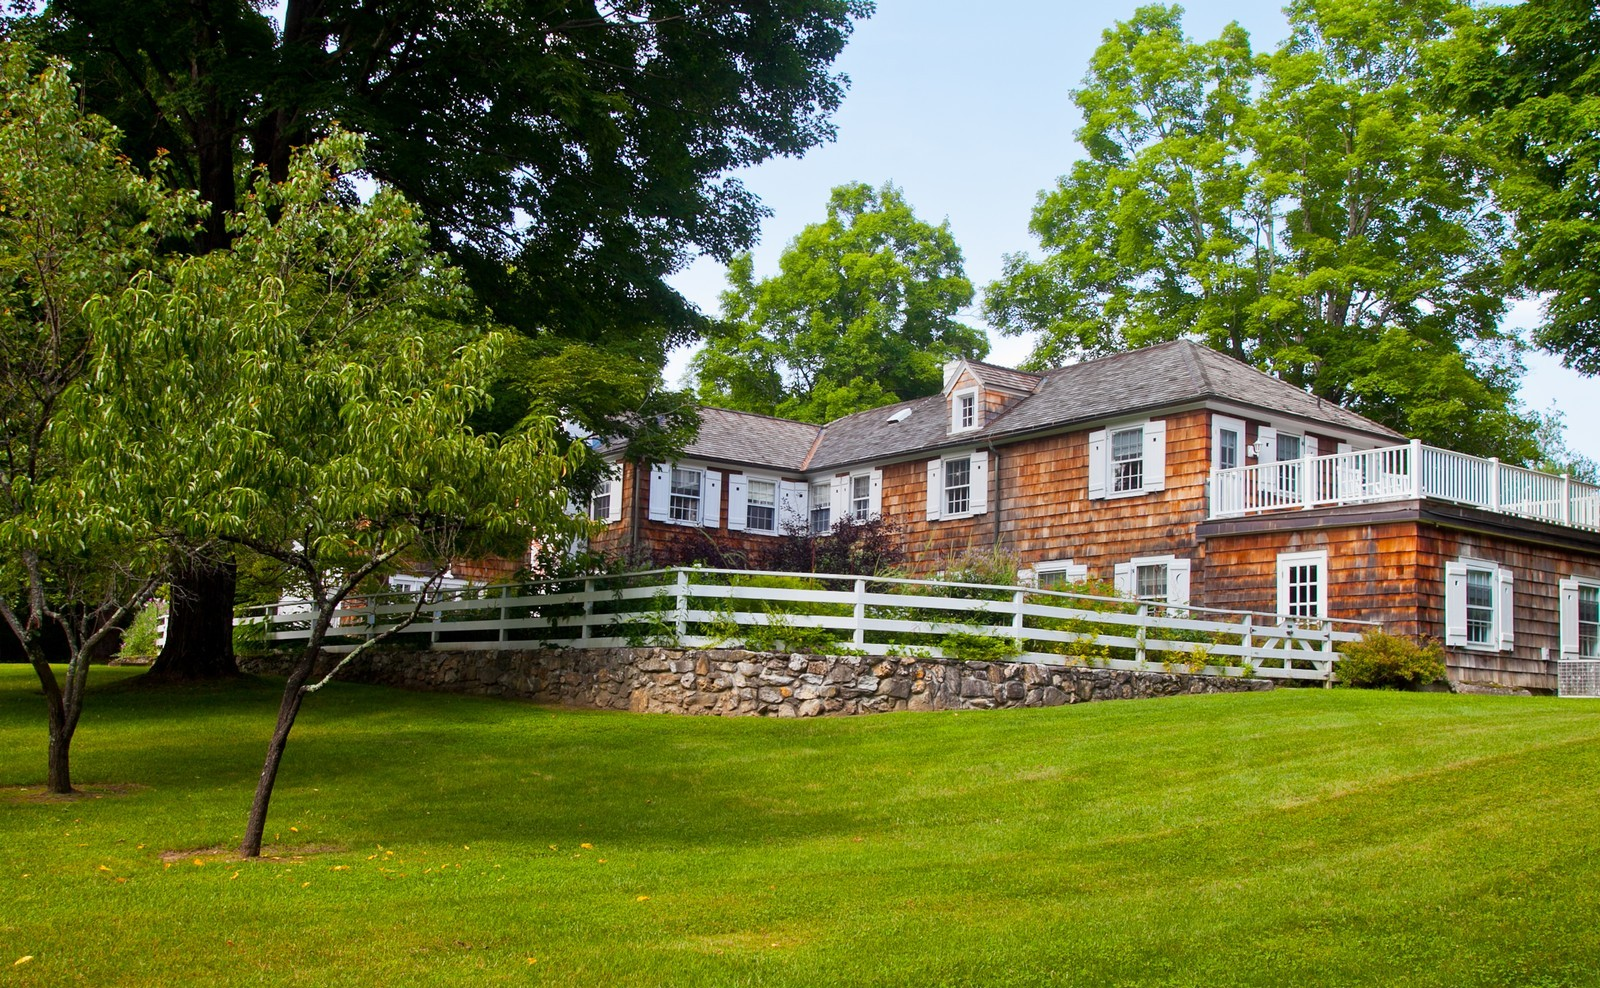 Single Family Home for Sale at Private Sanctuary 164 Belden Street Falls Village, Connecticut 06031 United States